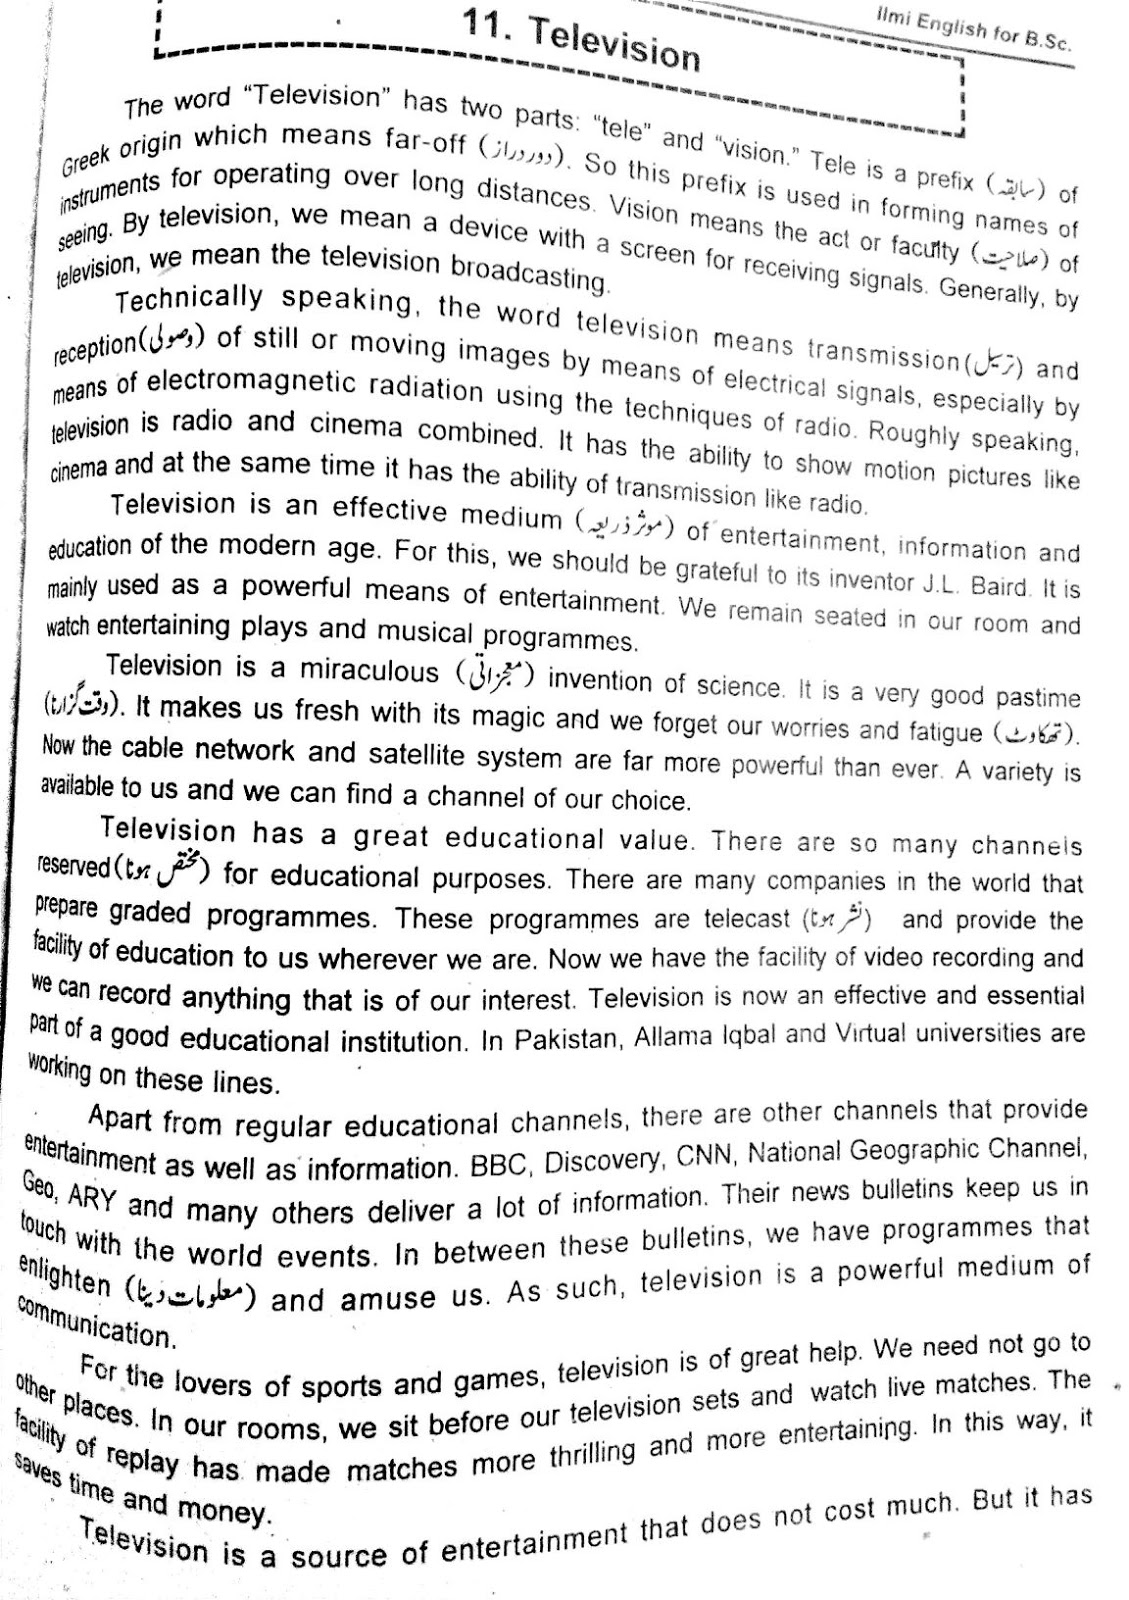 014 Essay Example Tv Addiction For Bsc Beautiful Full